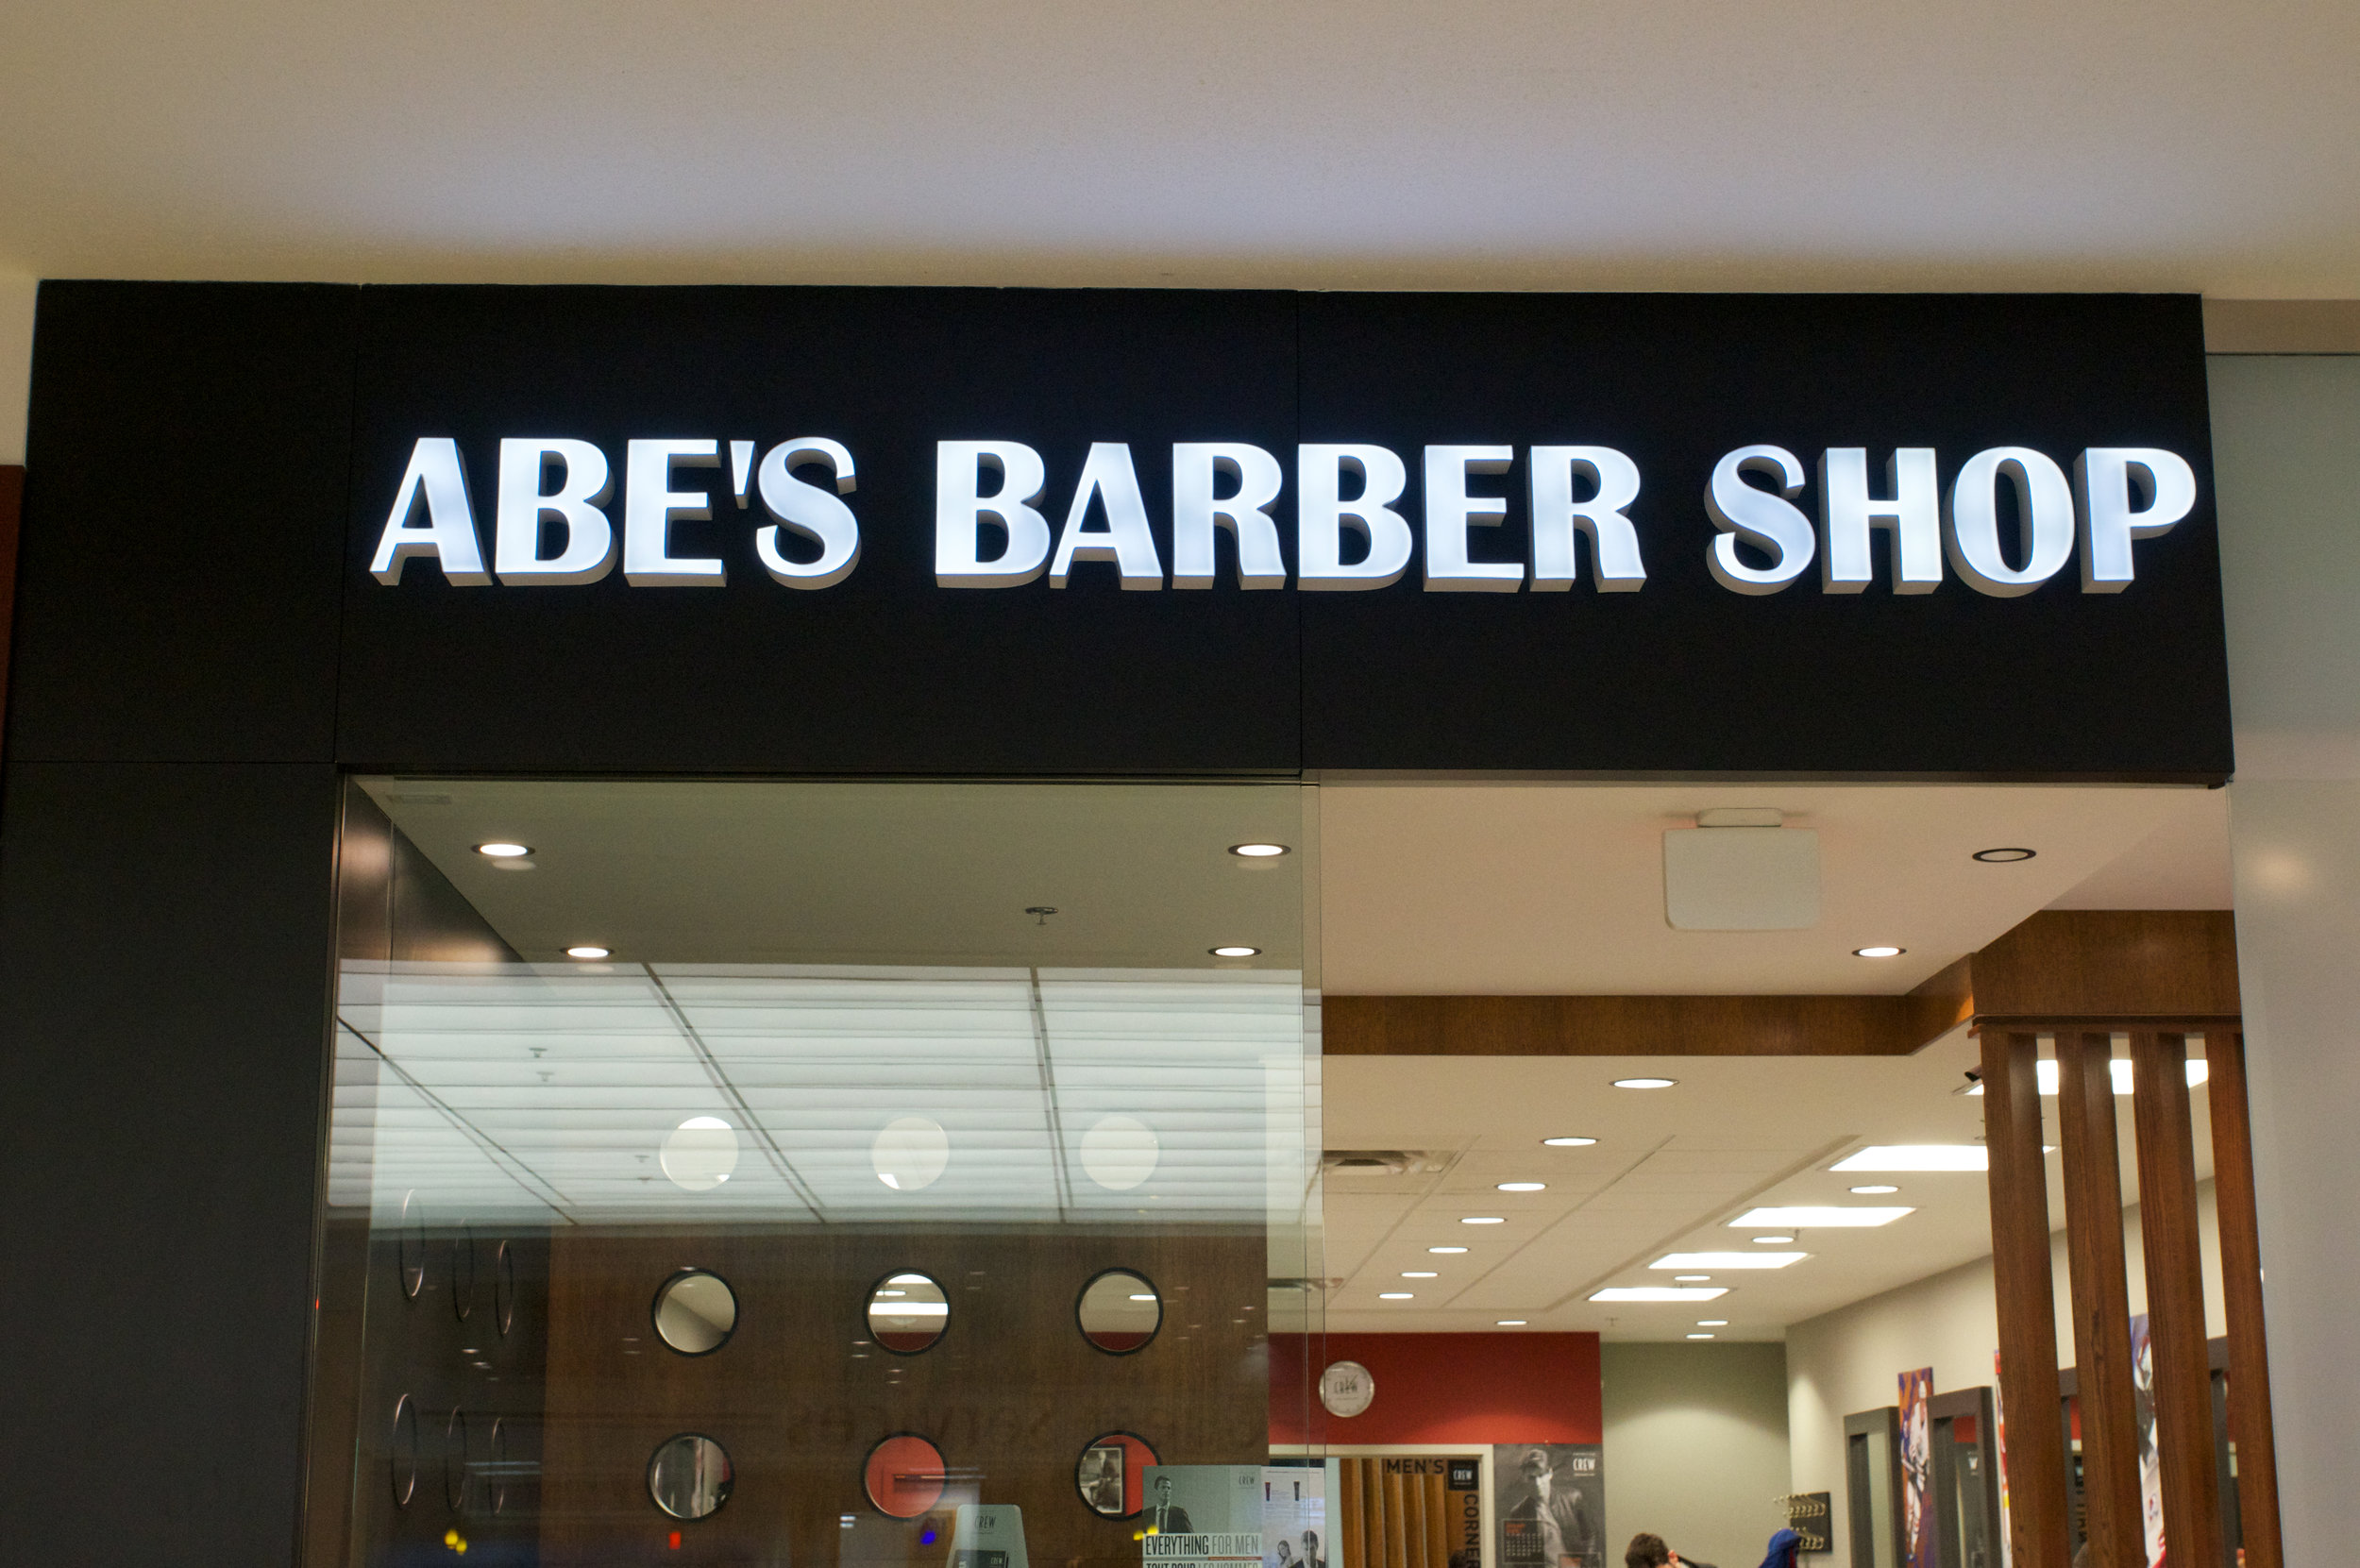 Abe's Barber Shop - 1 sign.jpg